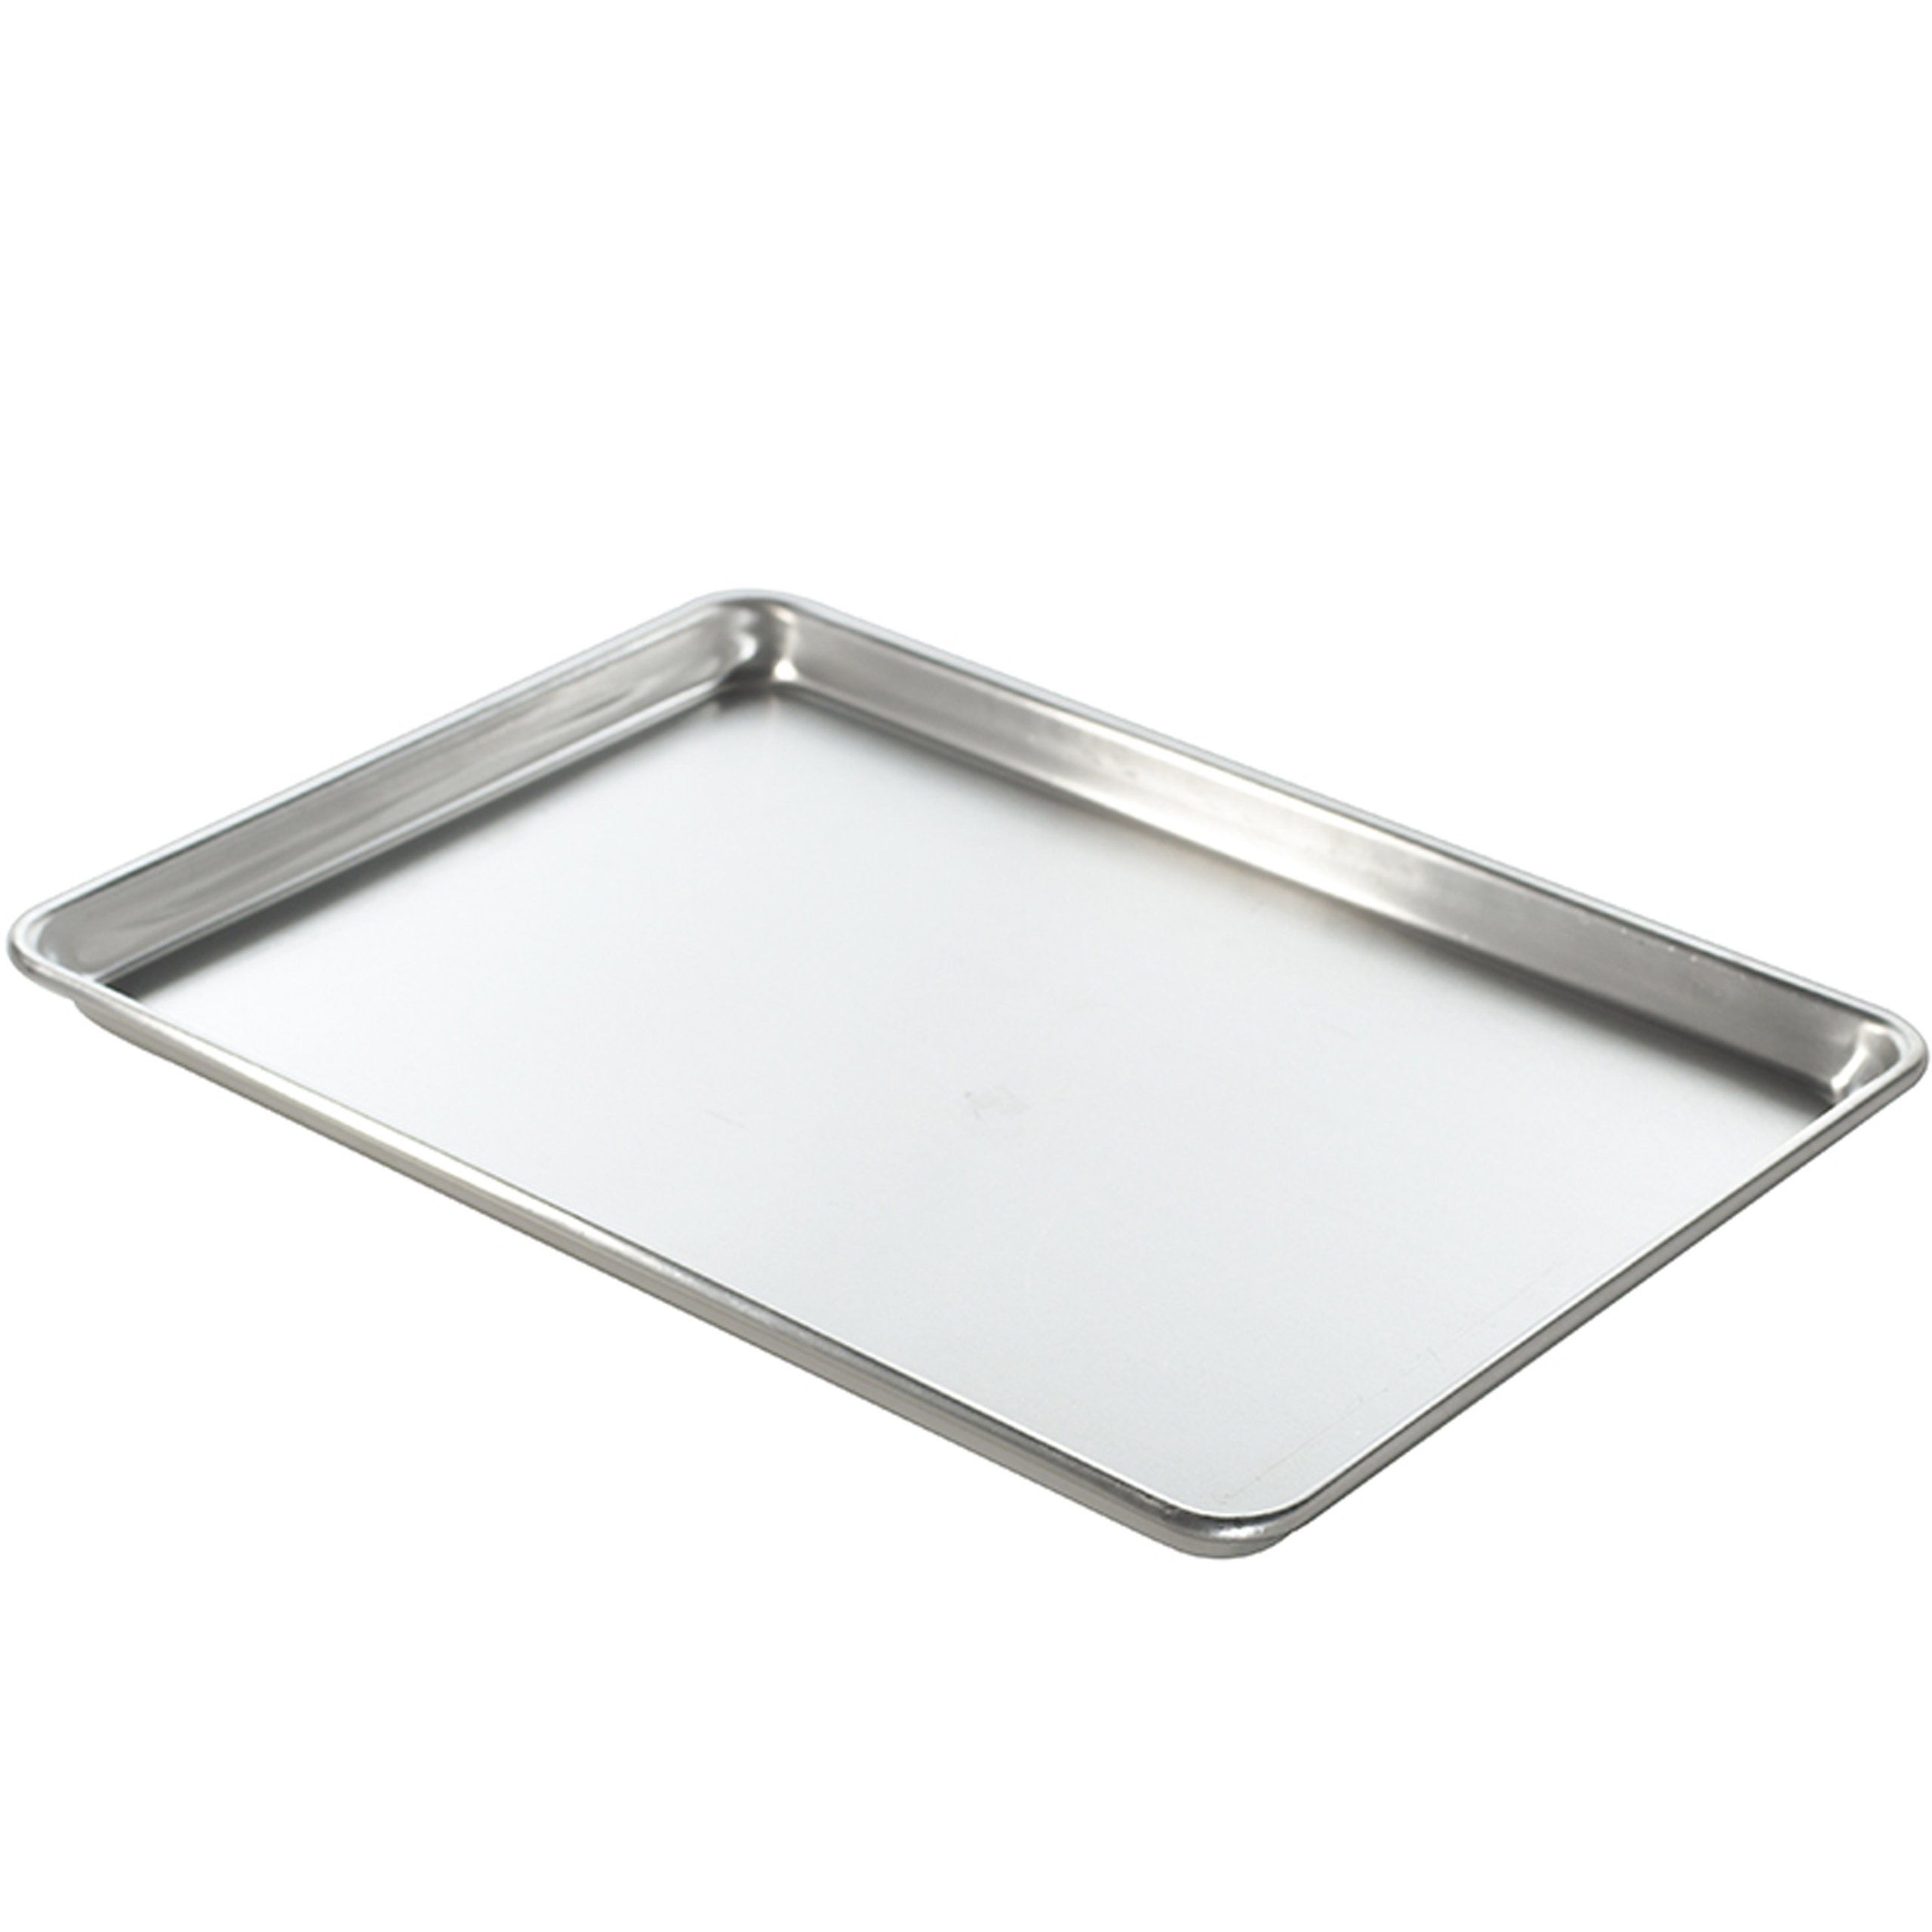 Amazon Com Nordic Ware Natural Aluminum Commercial Baker S Half Sheet Jelly Roll Pans Kitchen Dining Nordic Ware Nordic Sheet